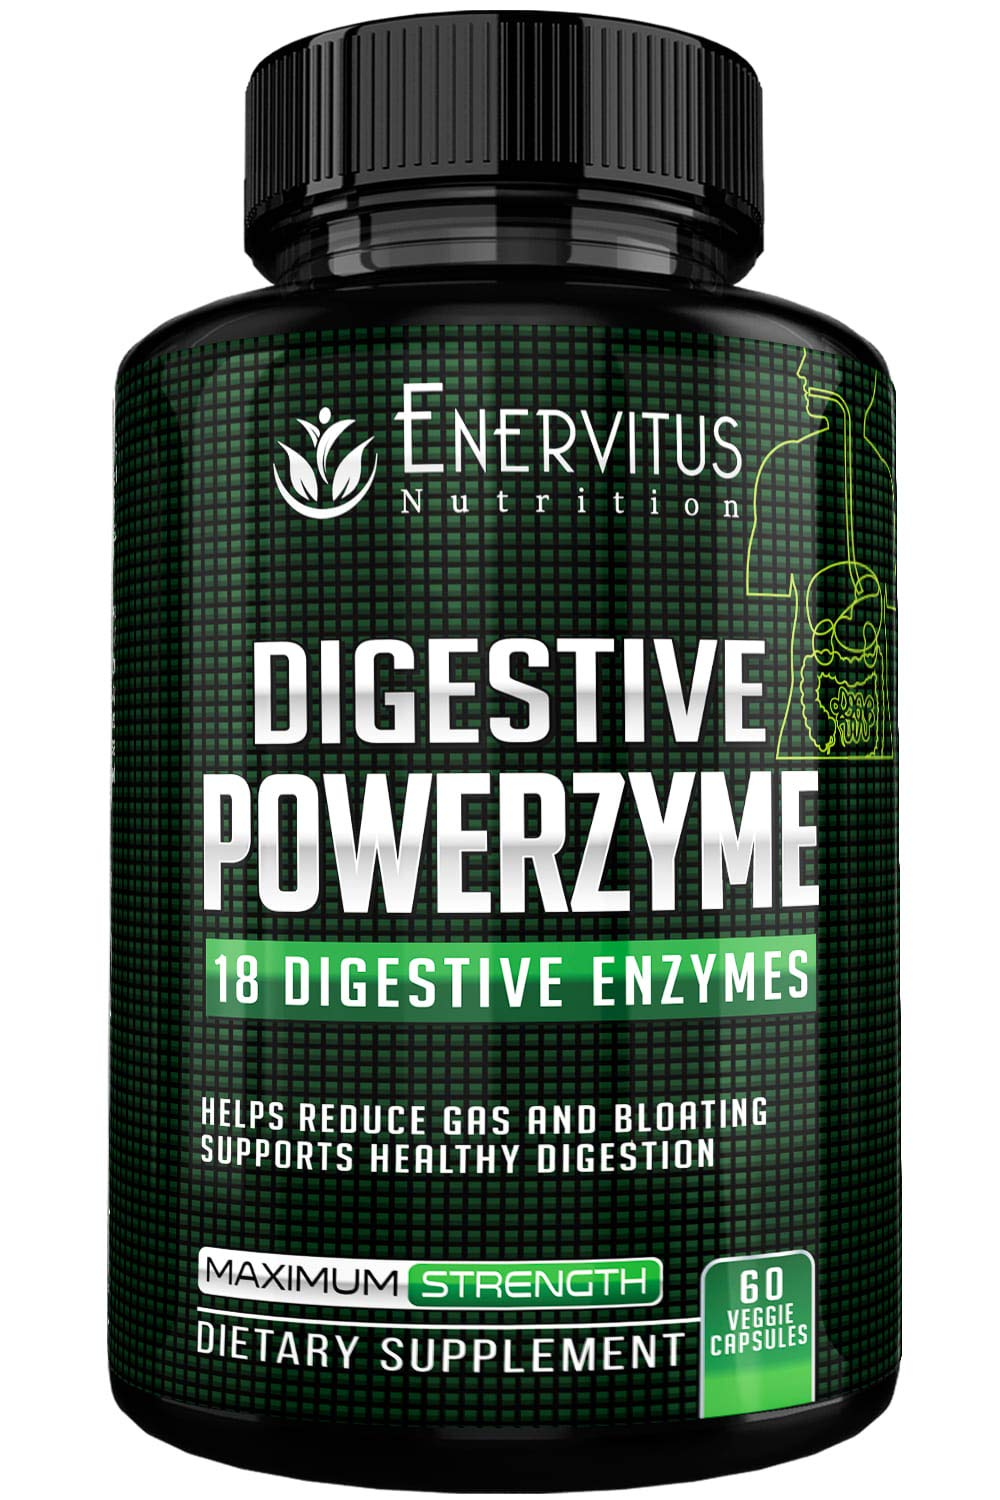 Digestive PowerZyme- Advanced Digestive Enzyme Supplements-18 Potent Enzymes Including Bromelain, Amylase, and Lactase to Relieve Indigestion, Gas, Bloating, Even Dairy and Gluten Issues!